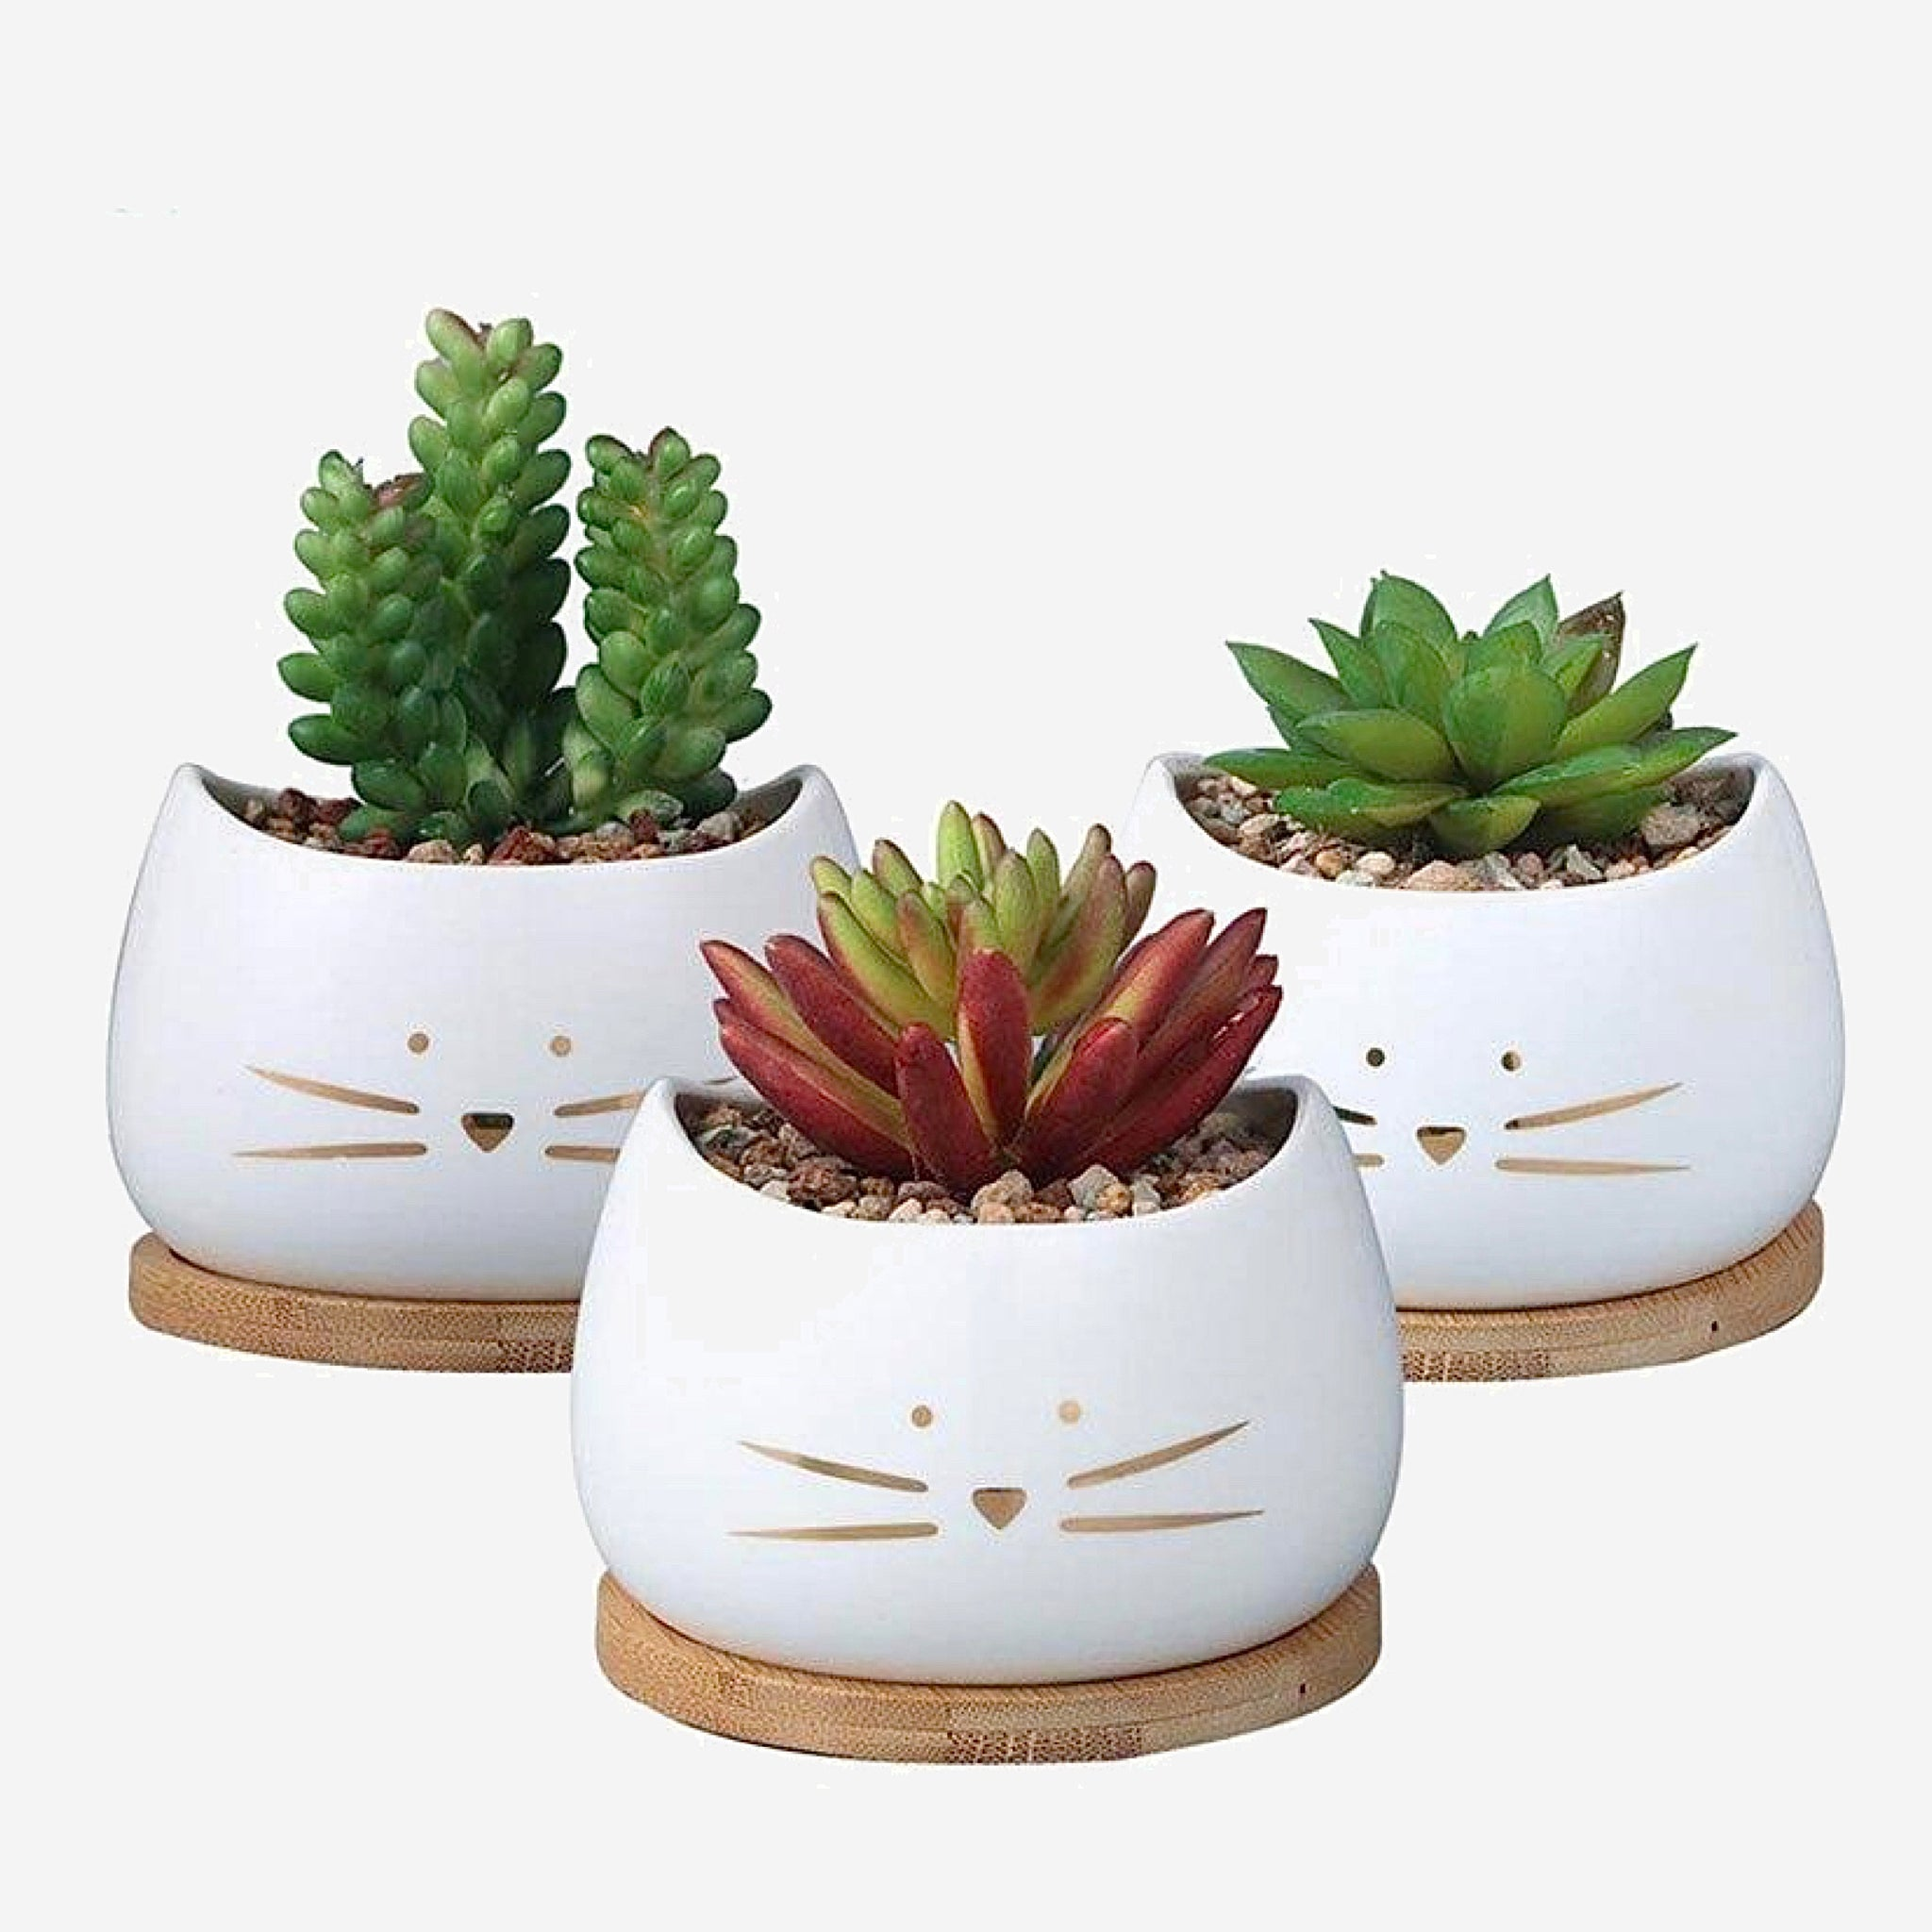 Cute Cat Face Planter Creative White Ceramic Succulent Flower Pot with Bamboo Tray Gardening Pots Trend